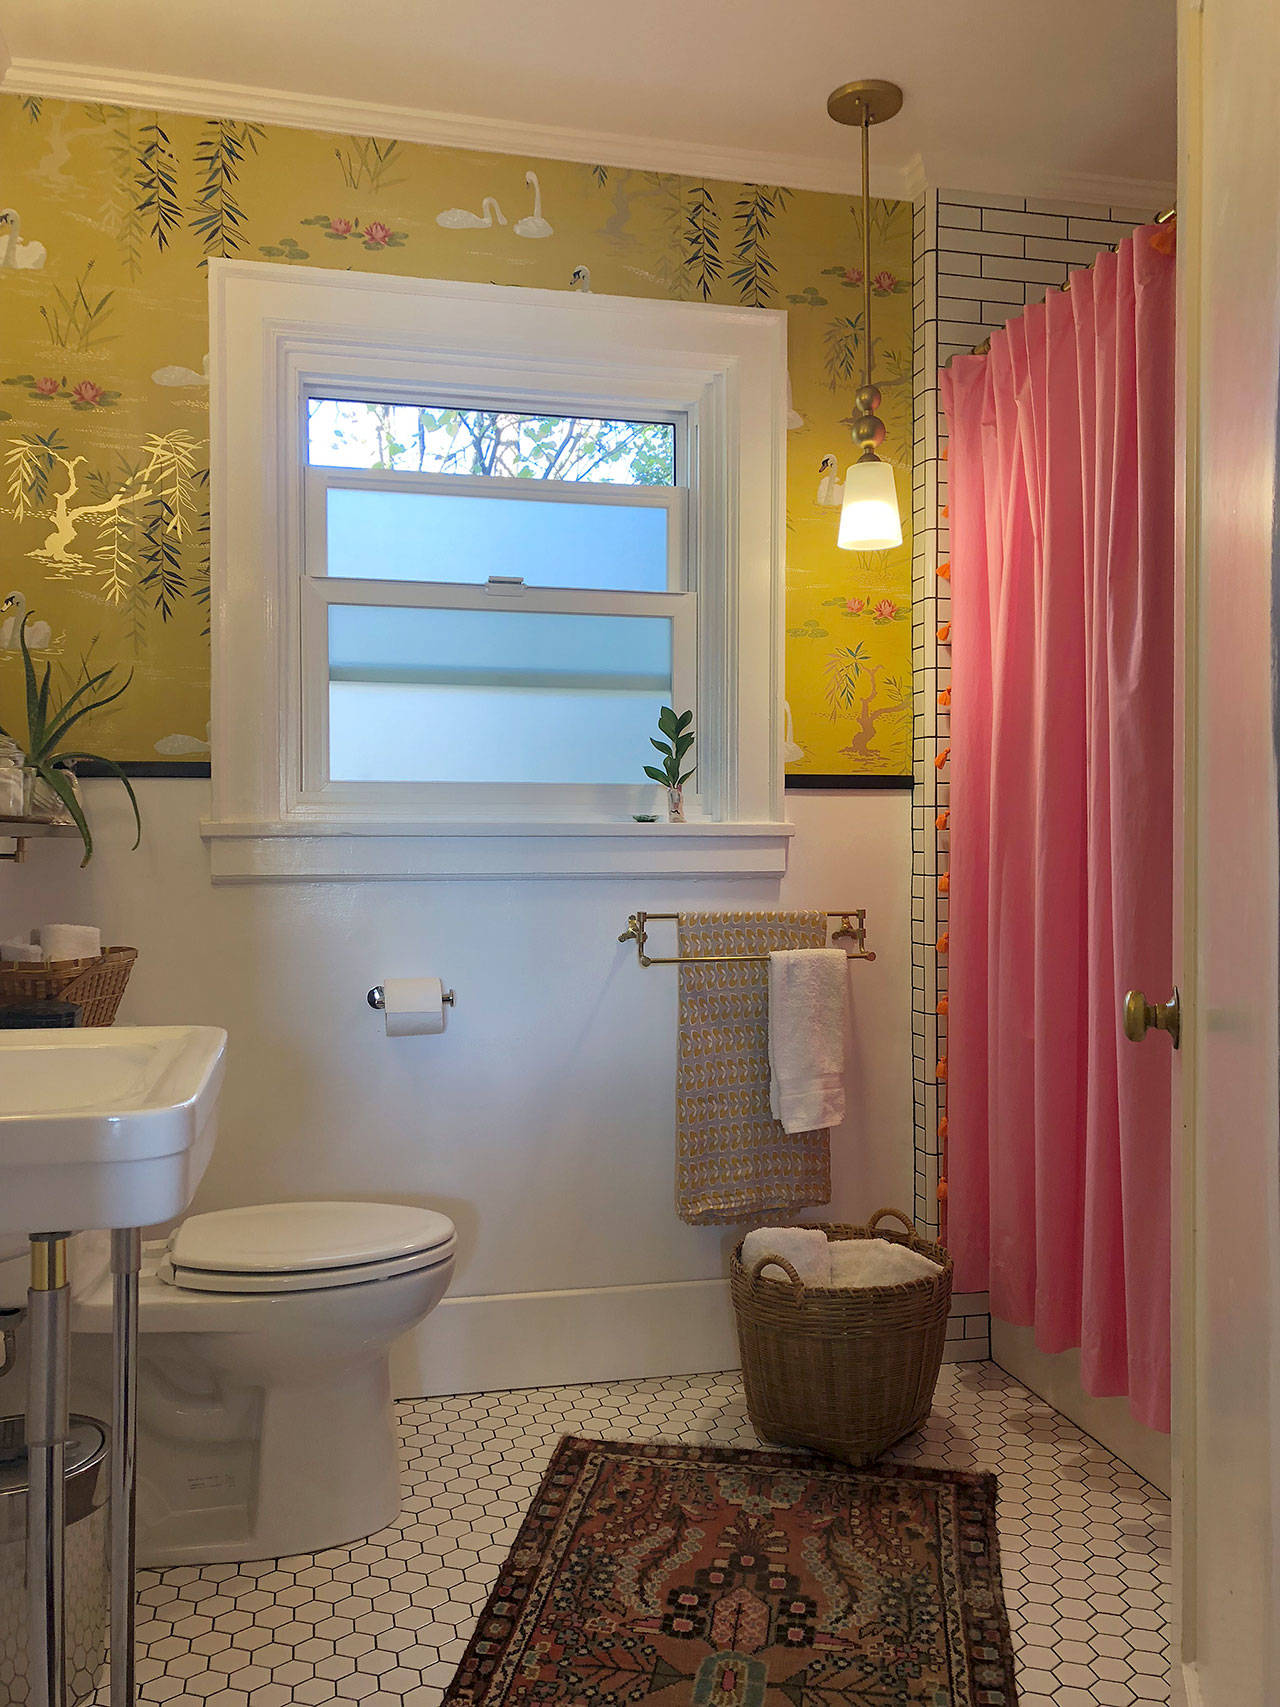 Bright colors from the wallpaper and shower curtain help add life to the more staid tile and fixtures in the remodeled bathroom. (Aaron Swaney)